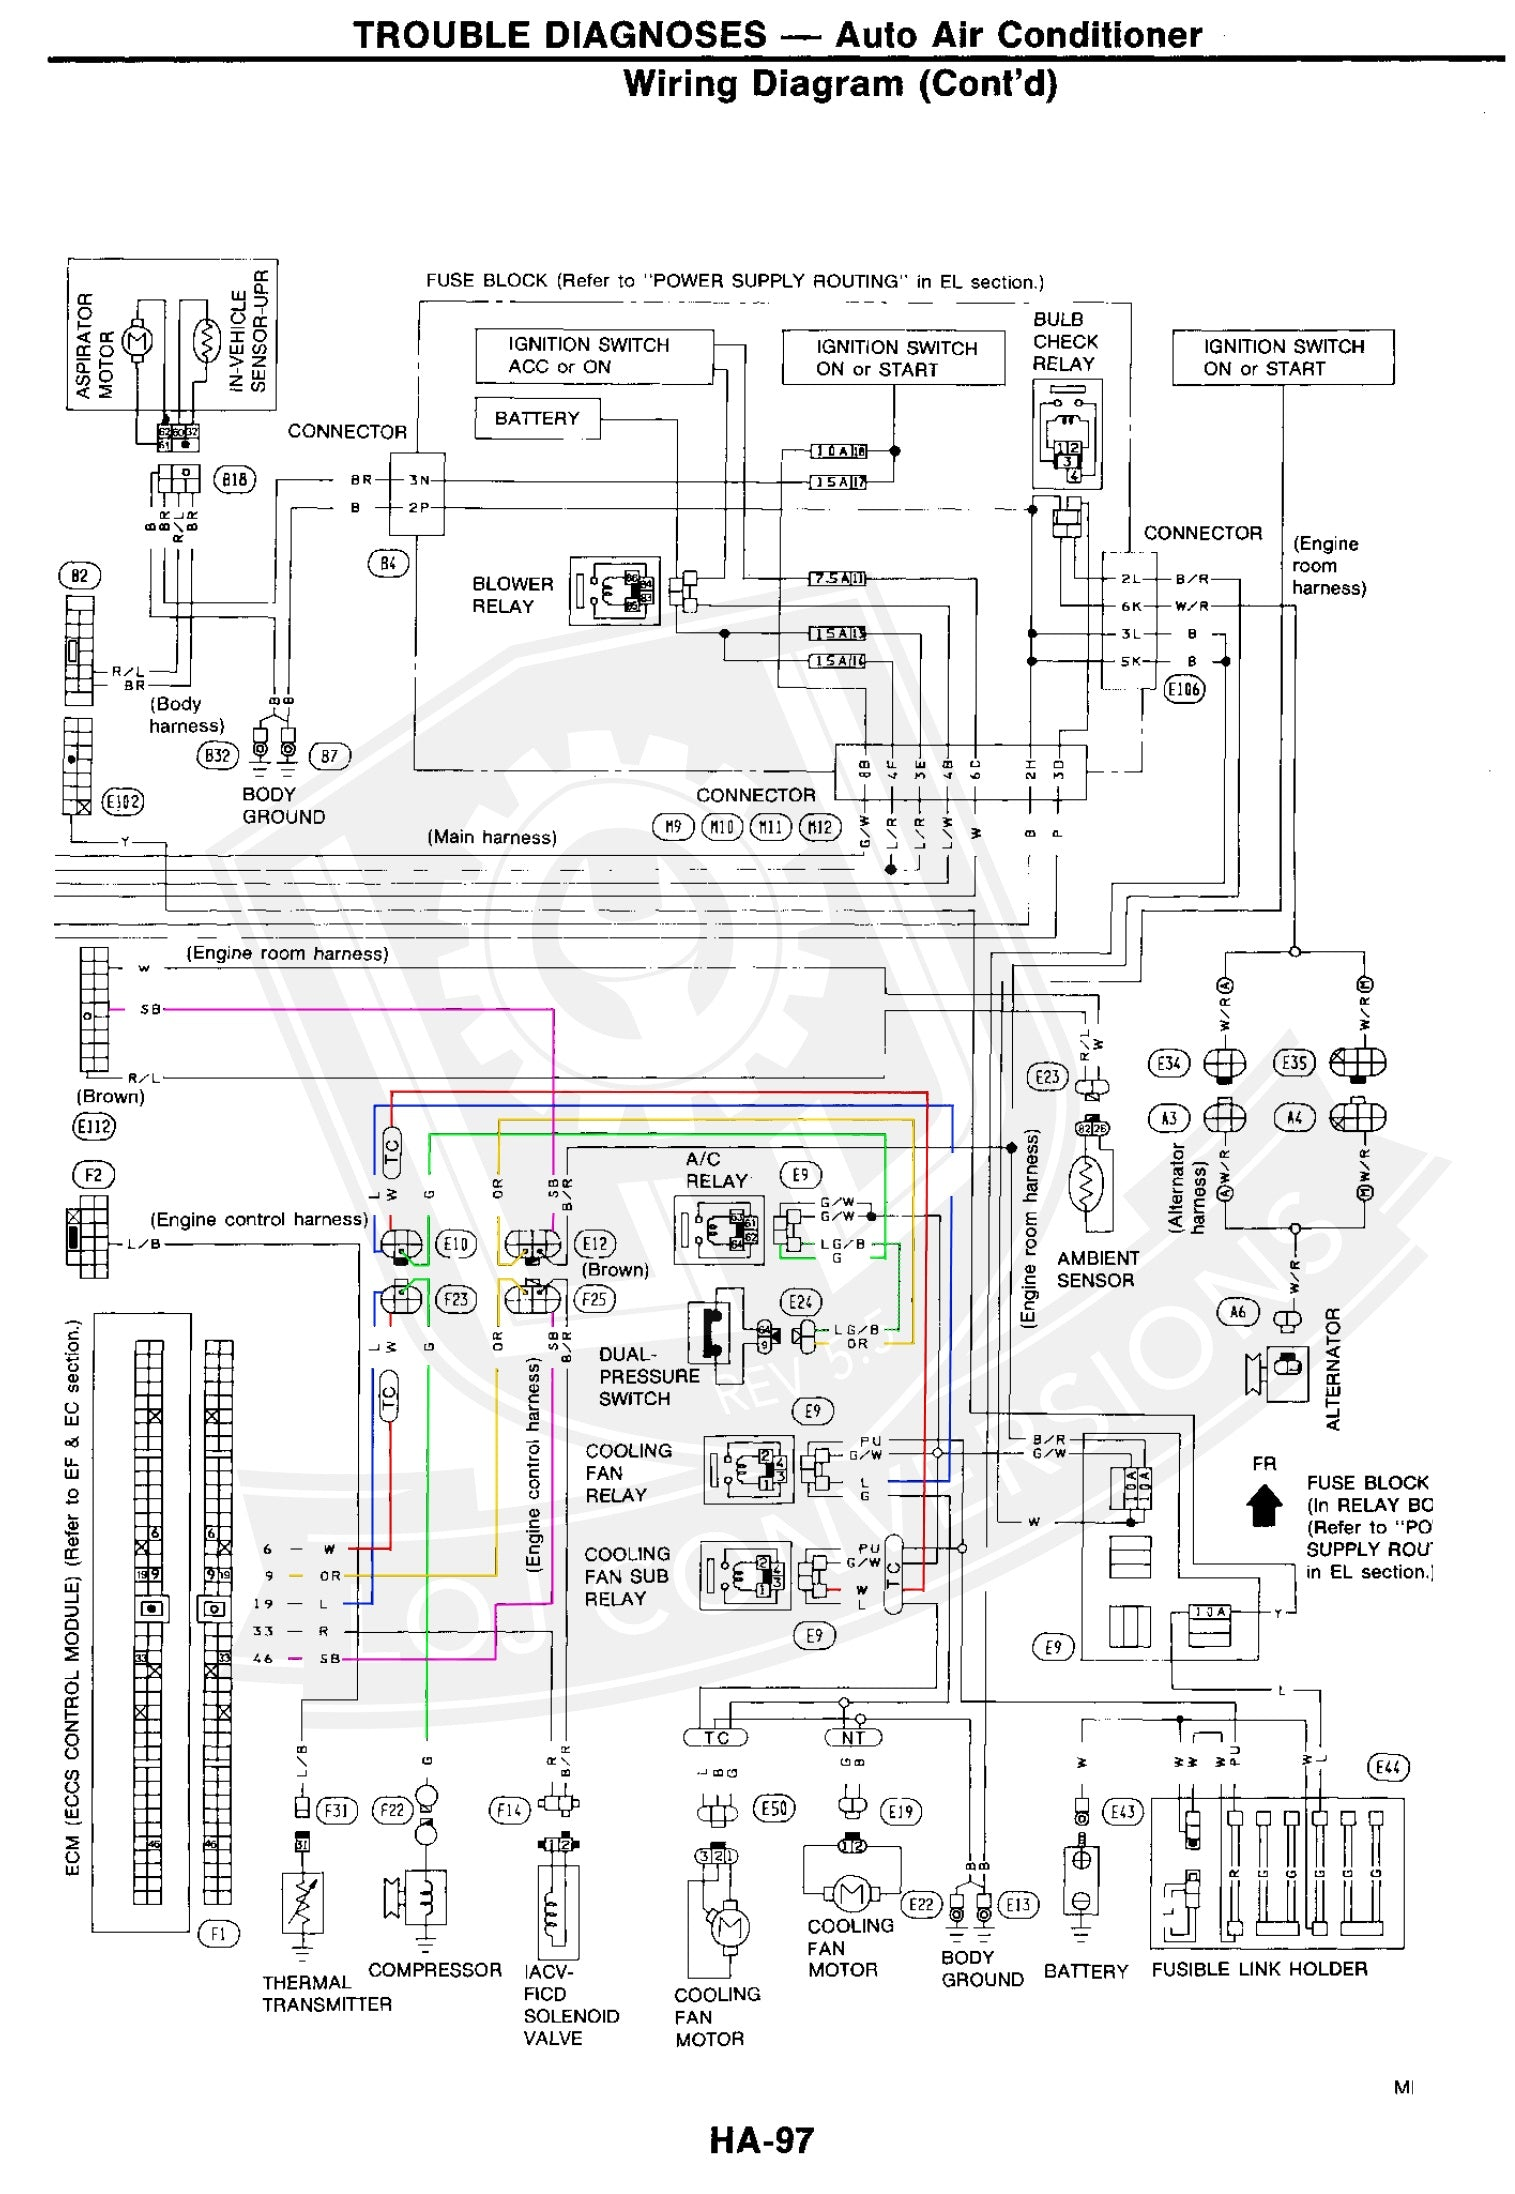 300ZX_AC_Wiring_Engine_Swap_02?9464186101000764173 300zx wiring harness diagram 300zx wiring harness diagram engine  at mifinder.co